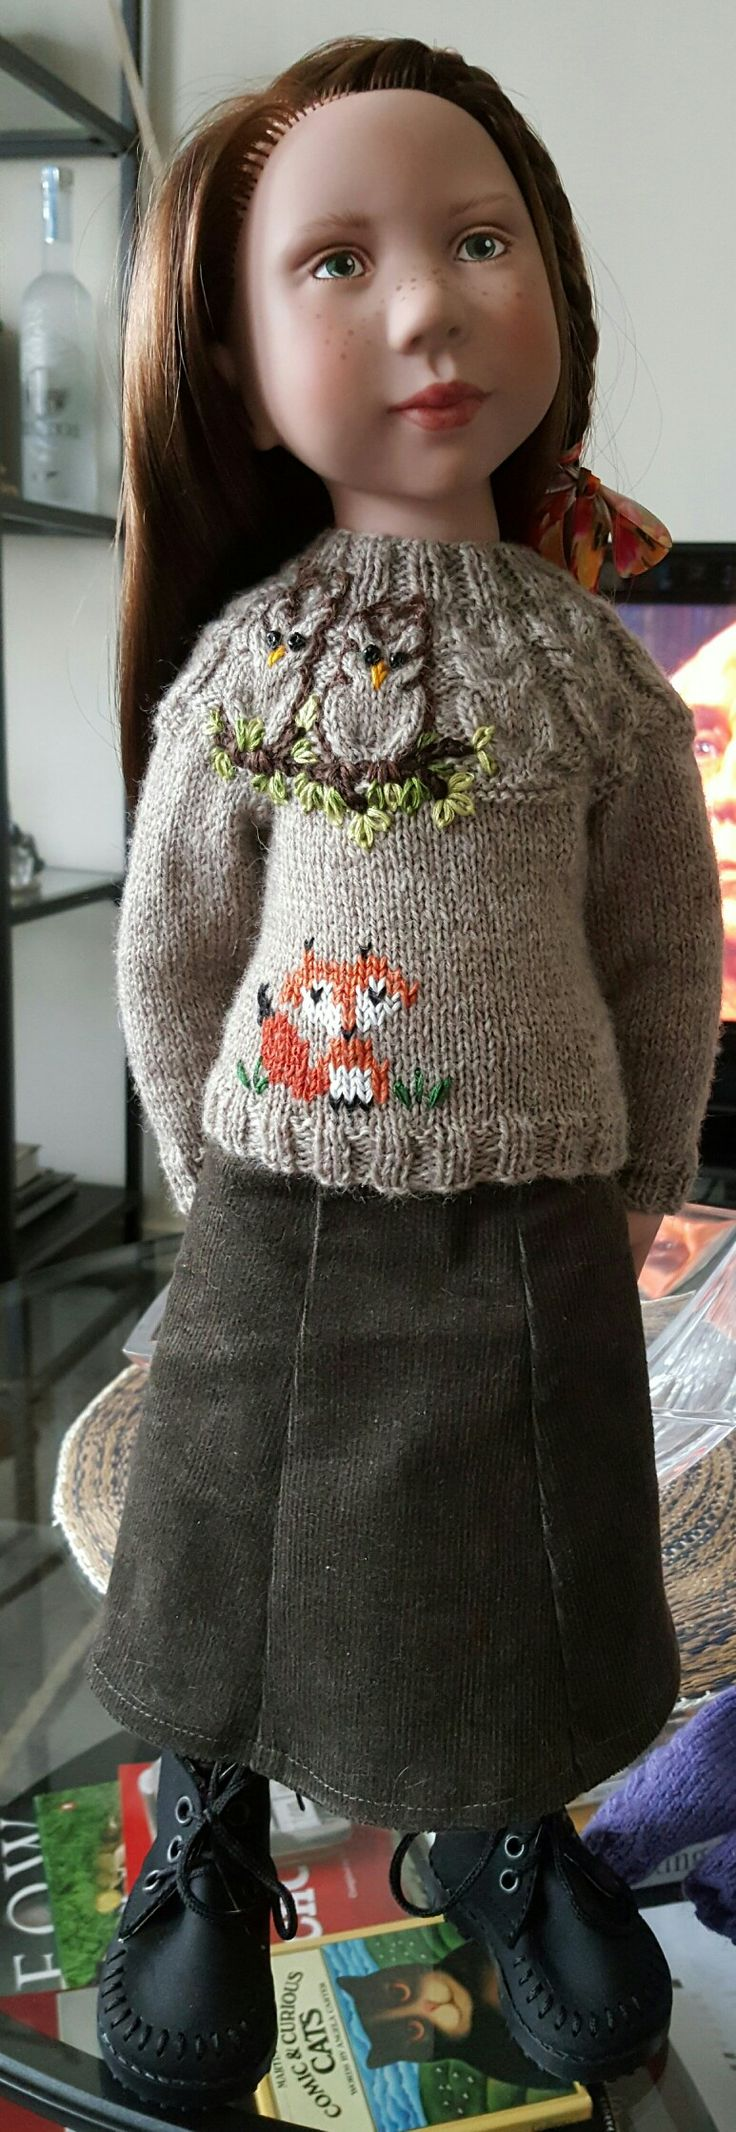 Swish and Swirl owl pattern. Added a little fox to make it a Springtime Woodland theme jumper.